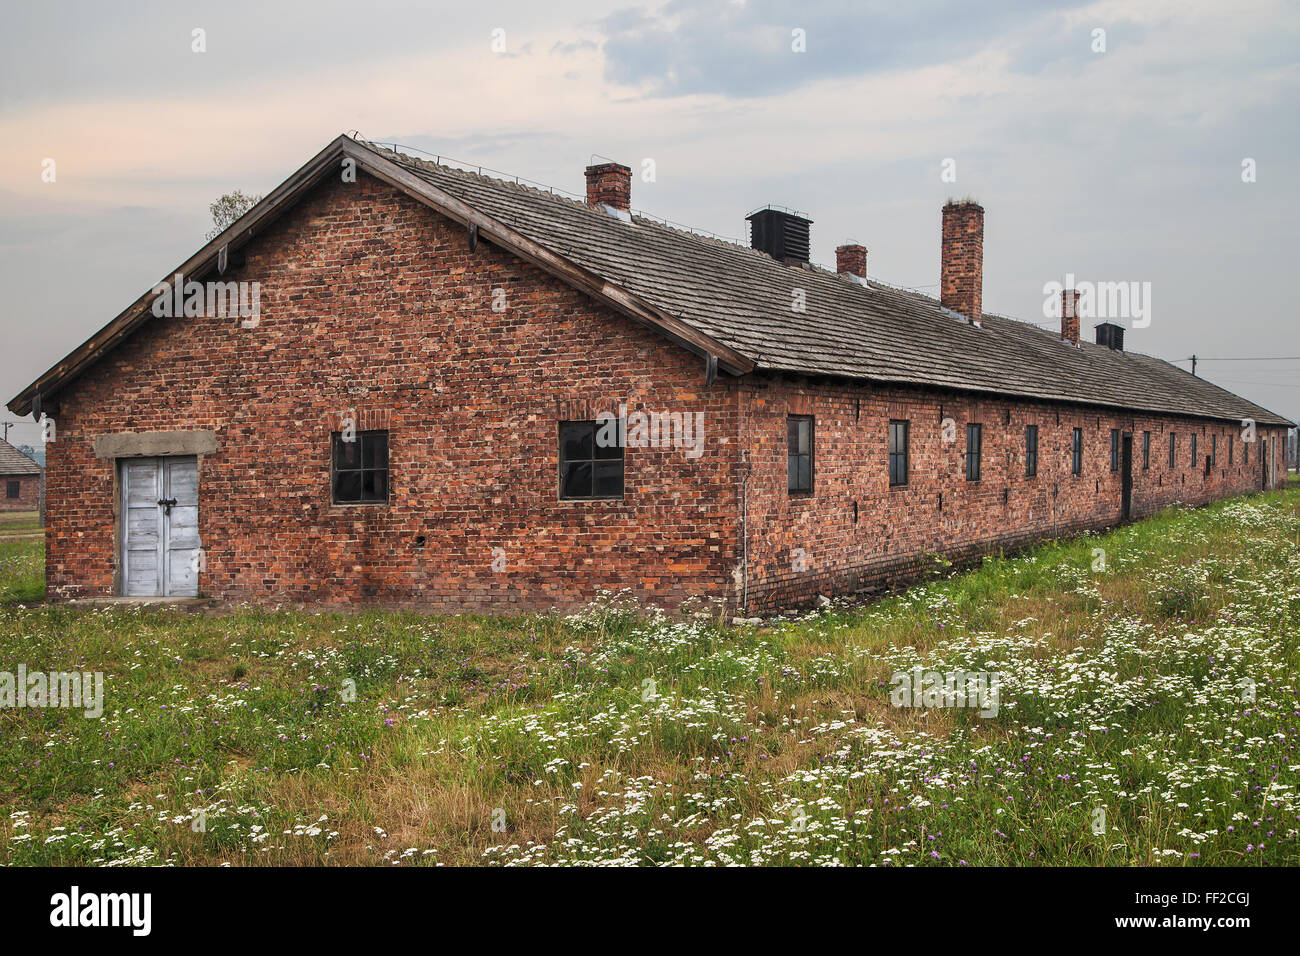 Bunkhouse at Auschwitz-Birkenau concentration camp in Oswiecim, Poland. - Stock Image